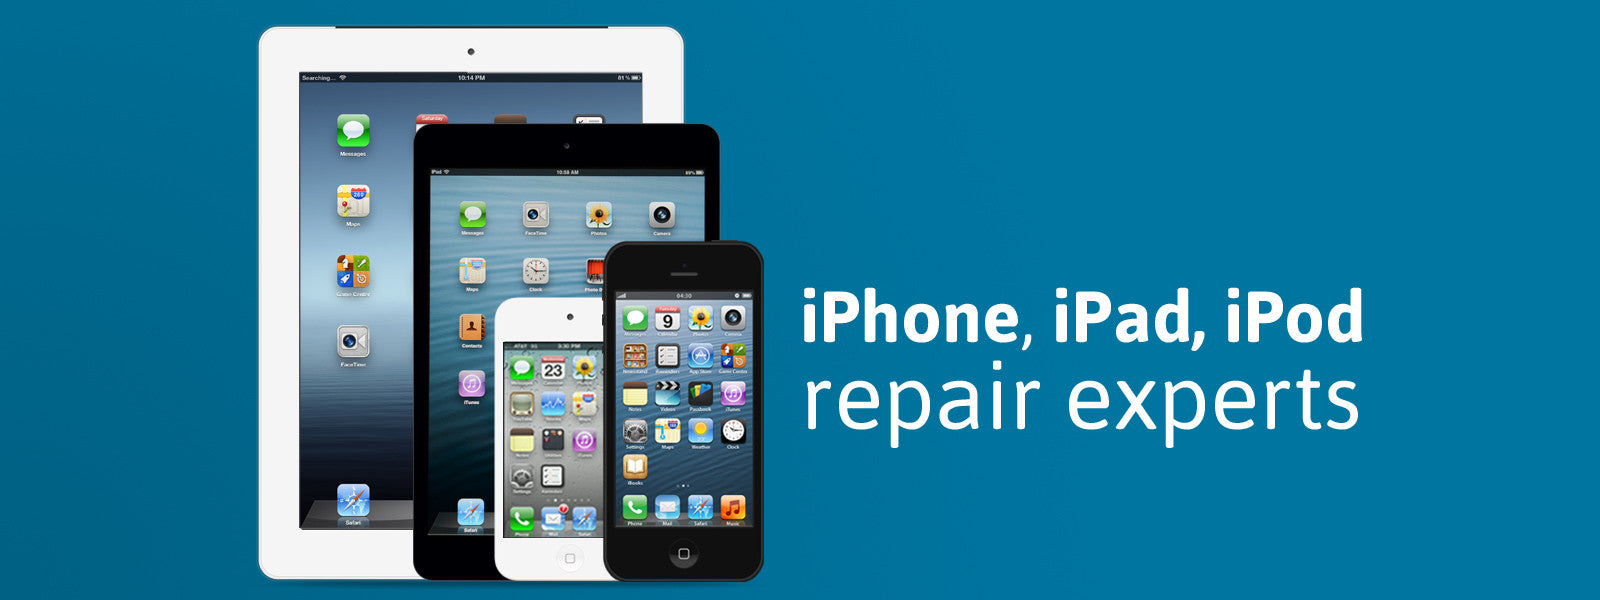 iphone ipad ipod repair